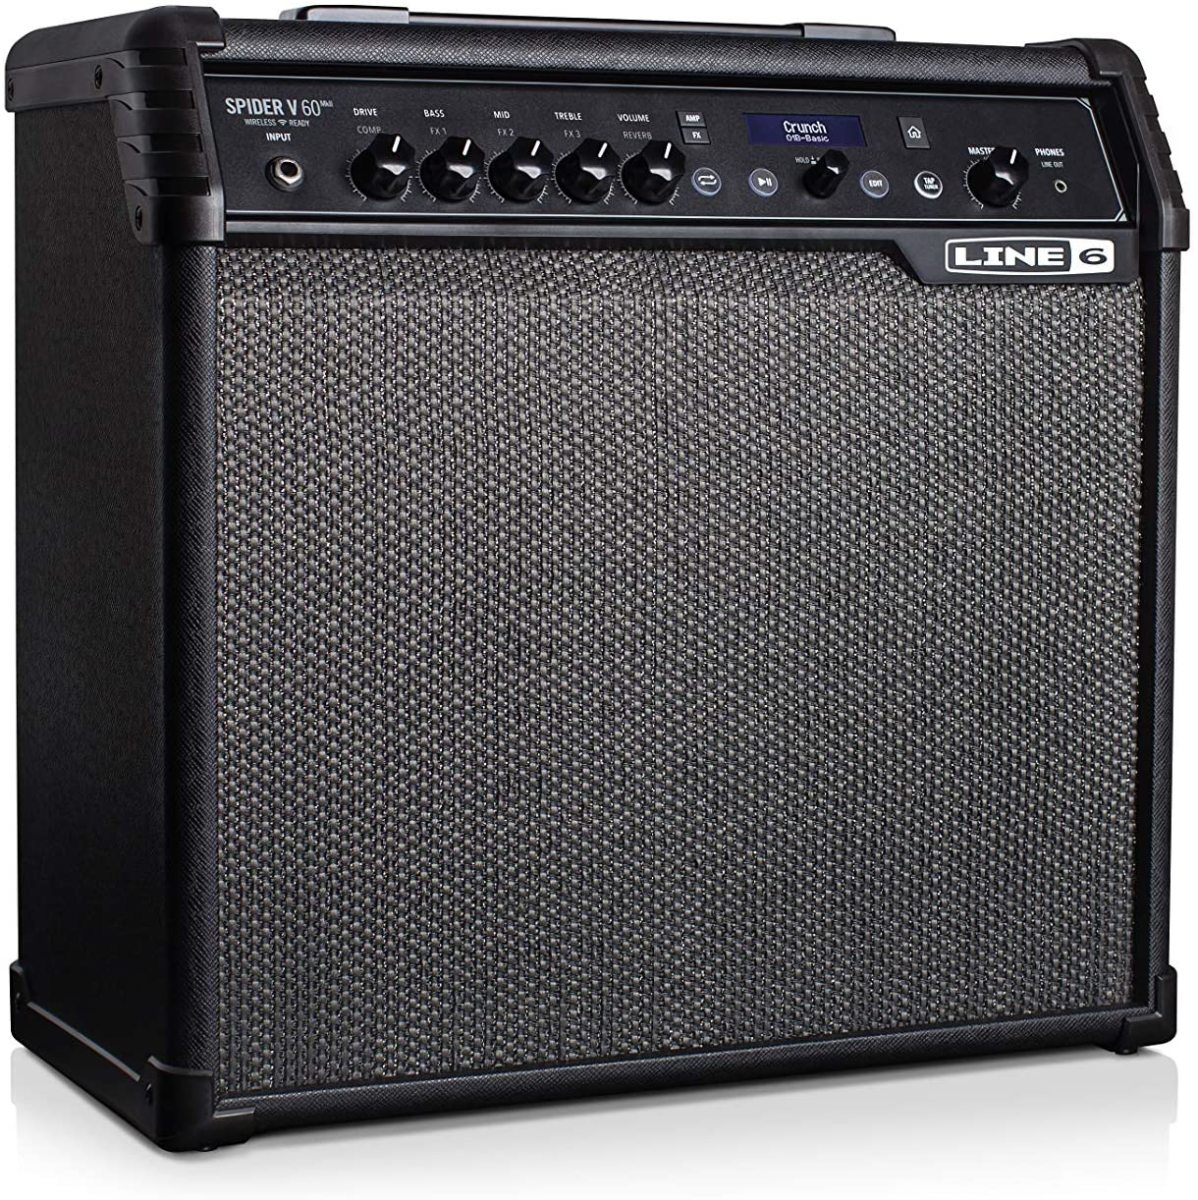 Line 6 Spider V Mk II Series Guitar Amps are among the best digital modeling amps in the world today.